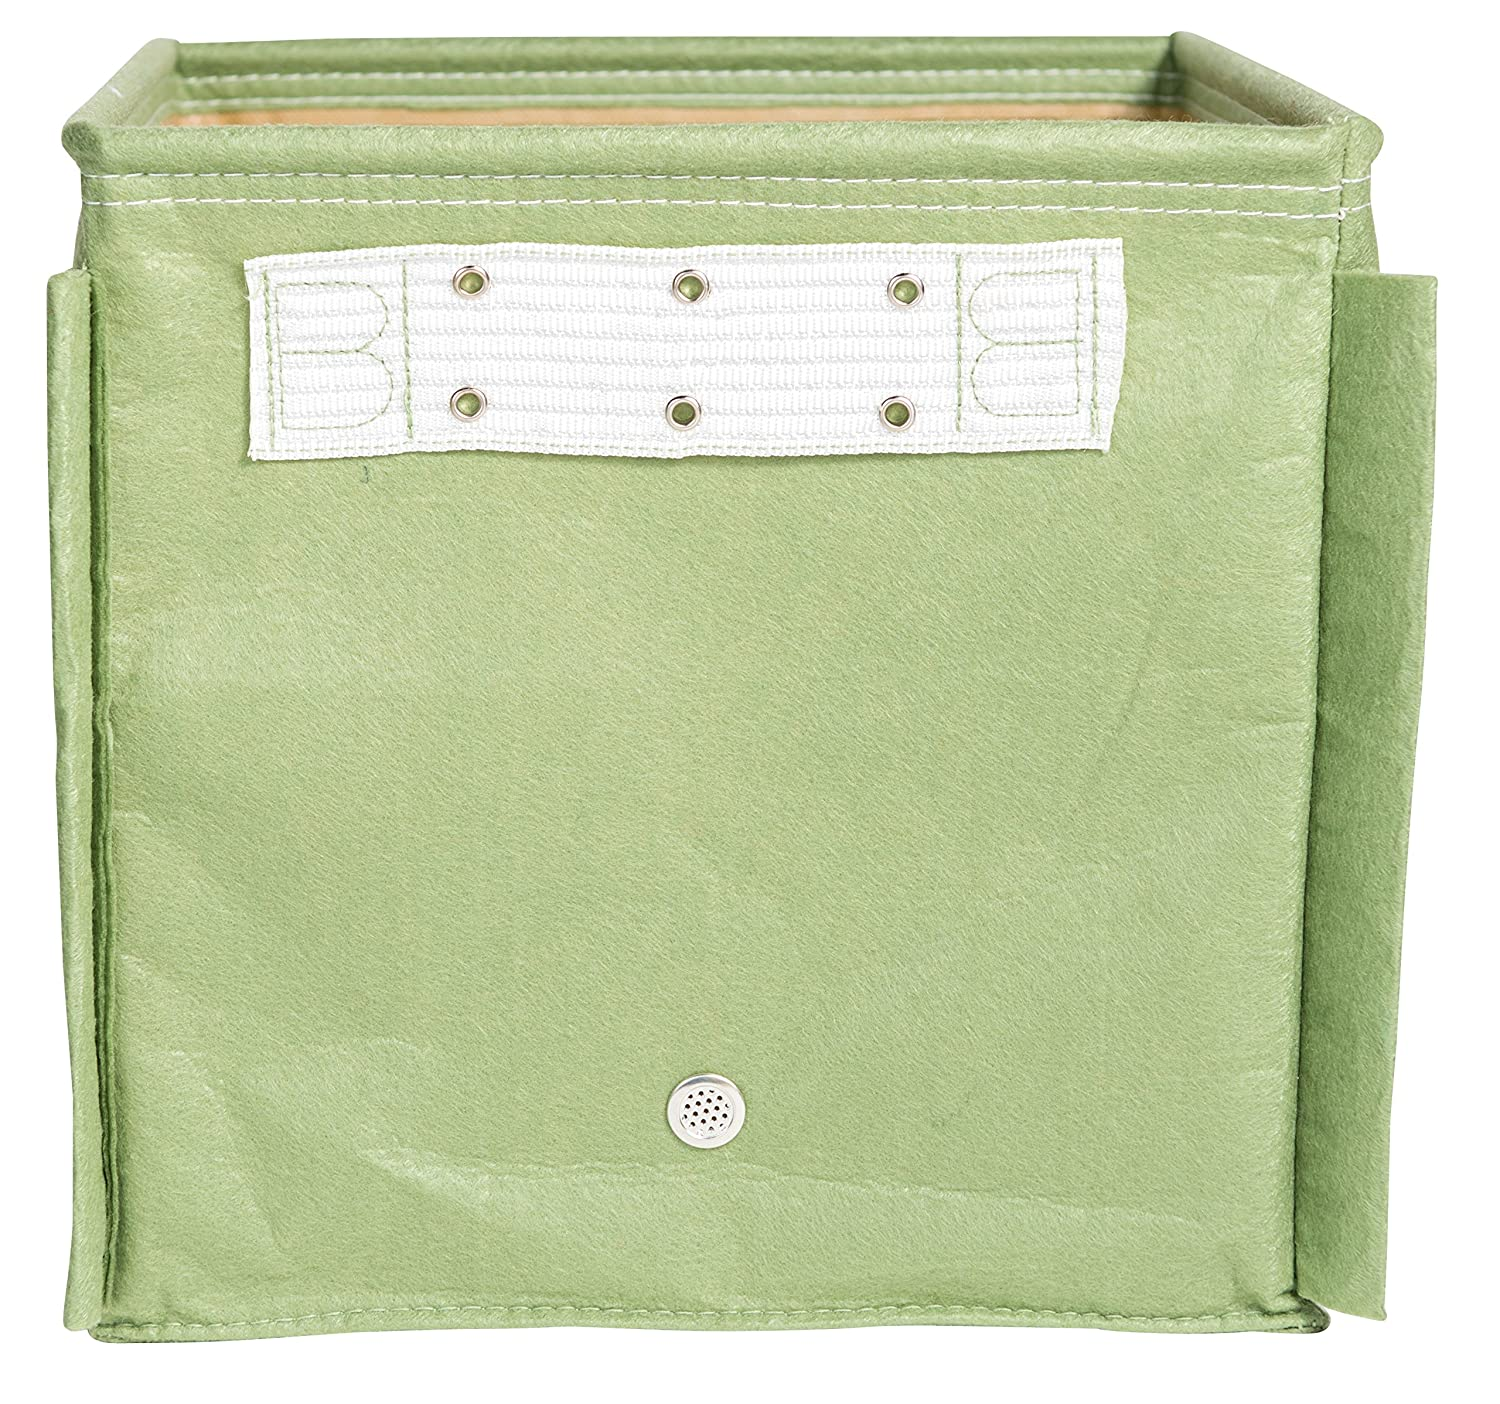 Bloem Universal Staking Kit for Tomato Or Pepper Grow Bags, Green